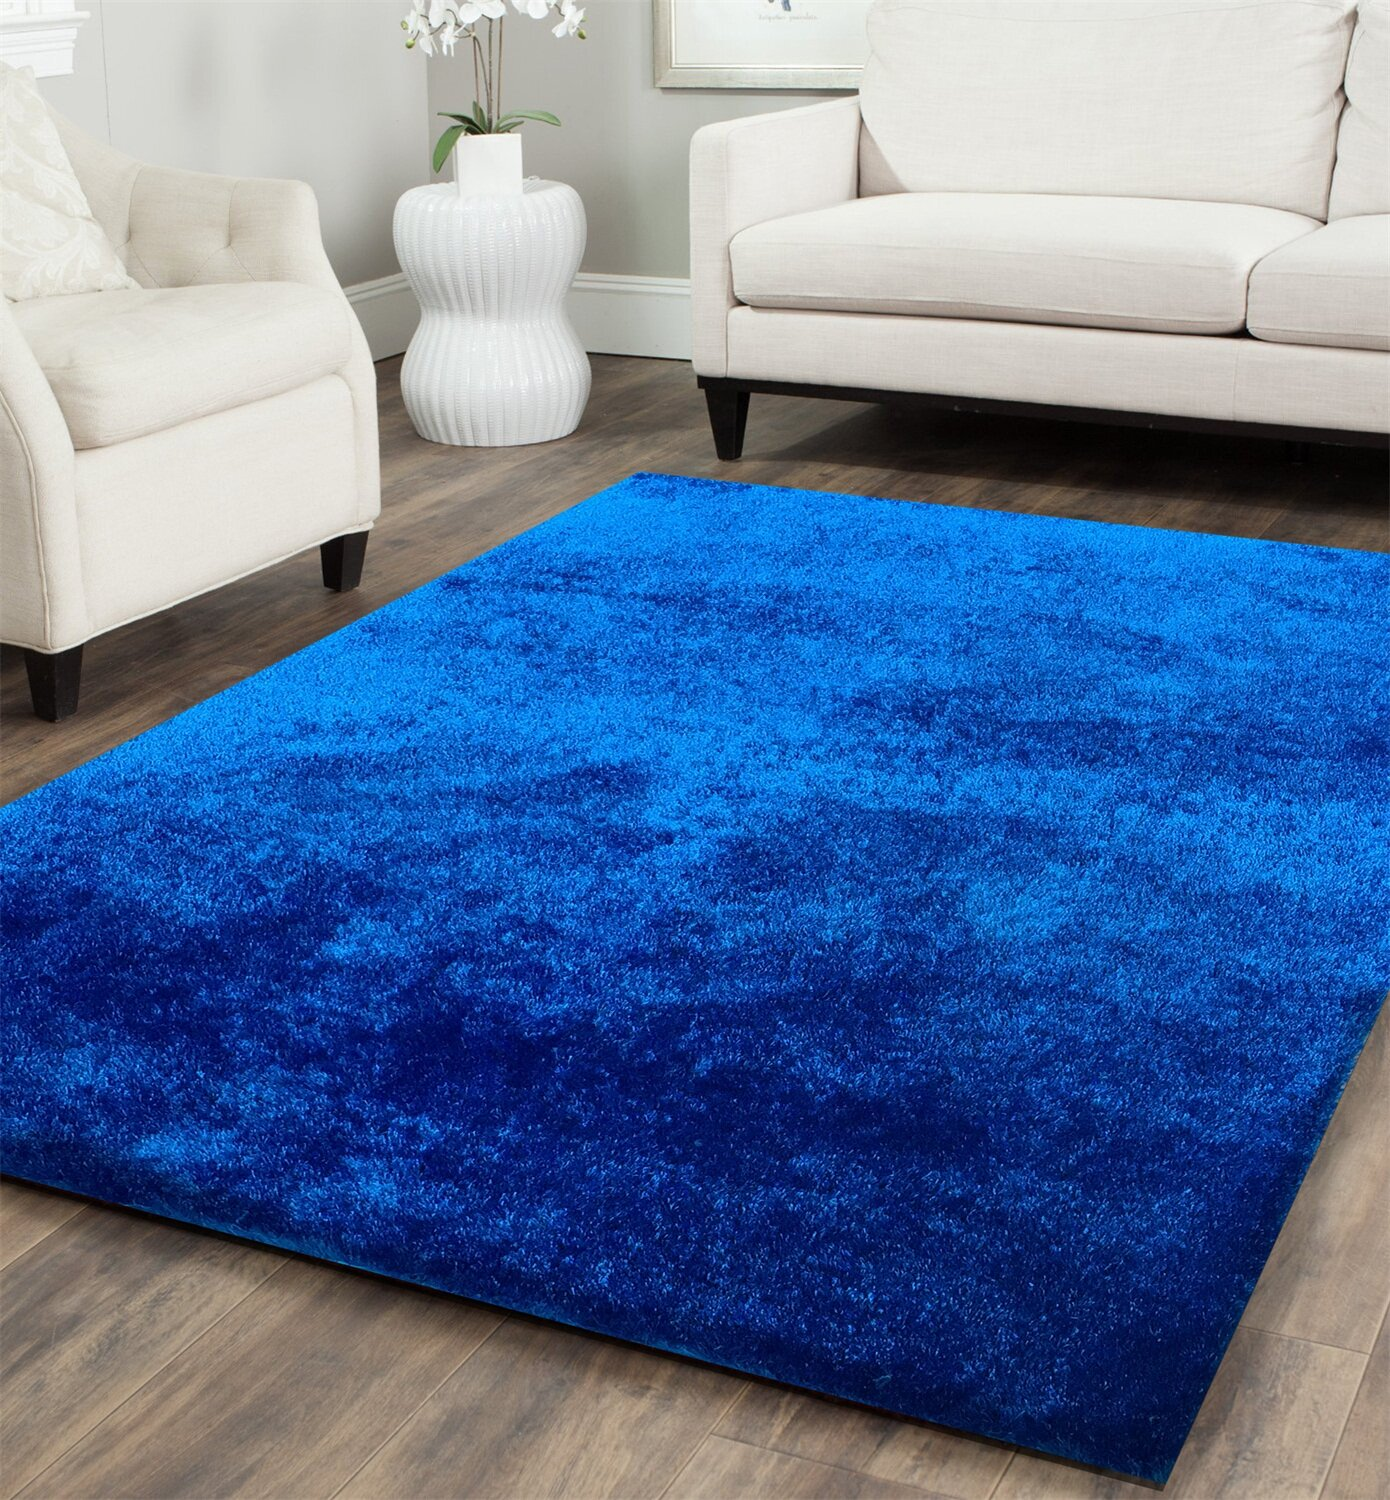 moroccan trellis trendz rug wa yellow area baby blue dazzling royal grey shag light then also navy plush rugs robust tobis